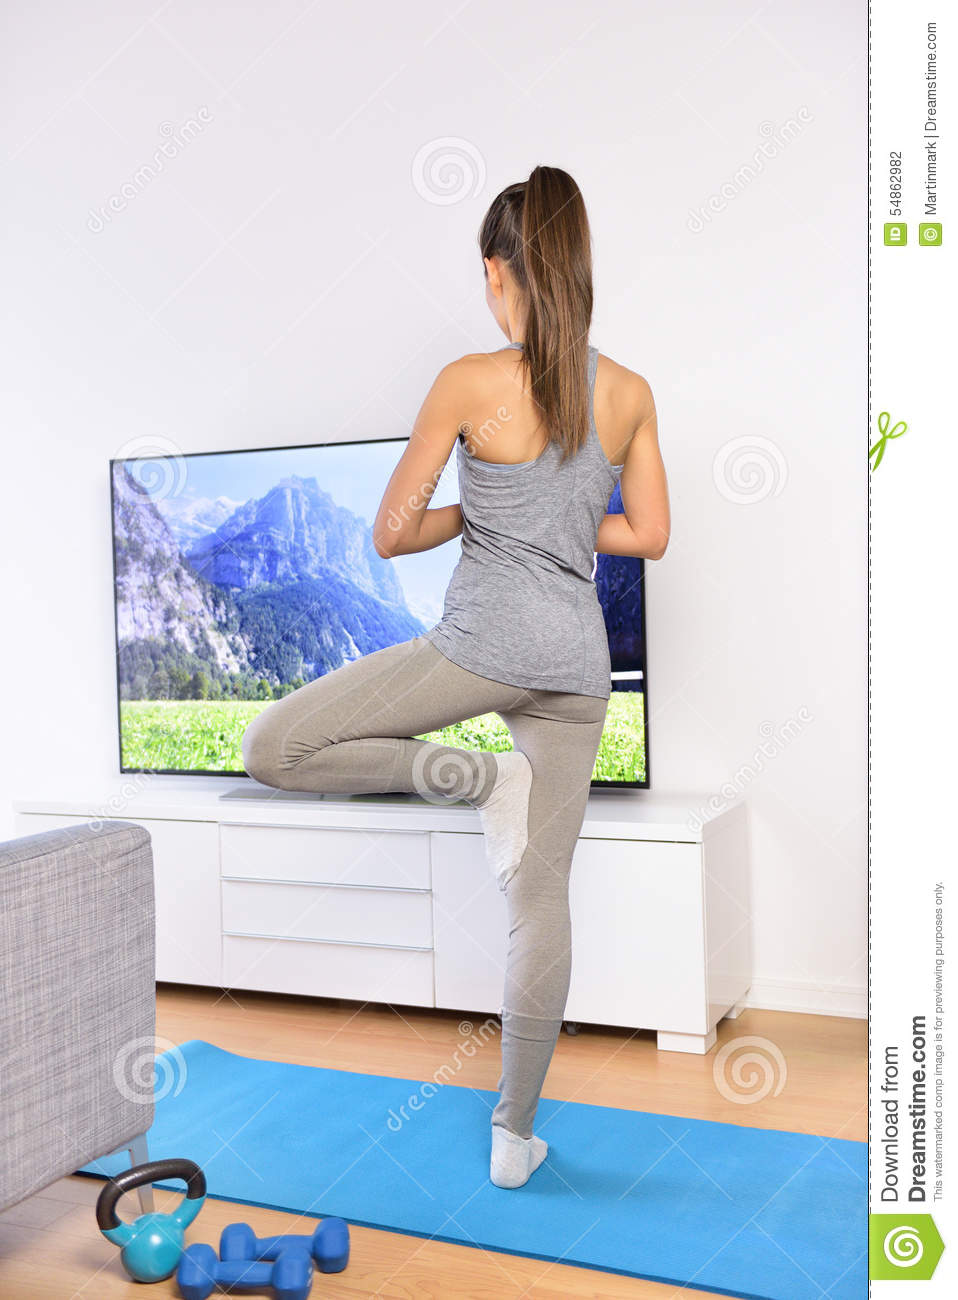 Yoga video woman training in home living room stock photo for Living room yoga